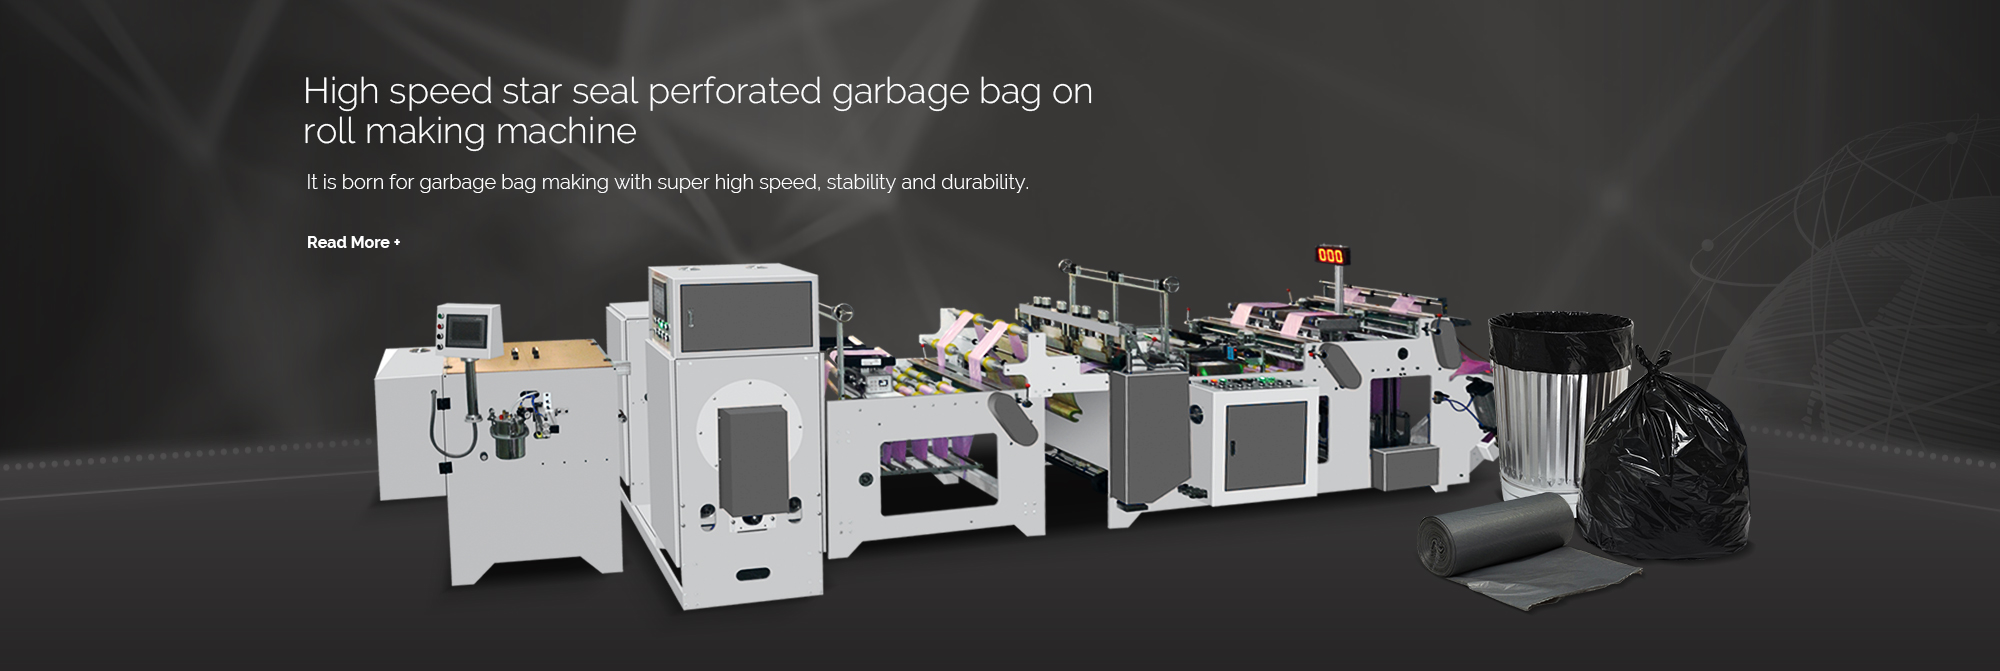 High speed star seal perforated garbage bag on roll making machine